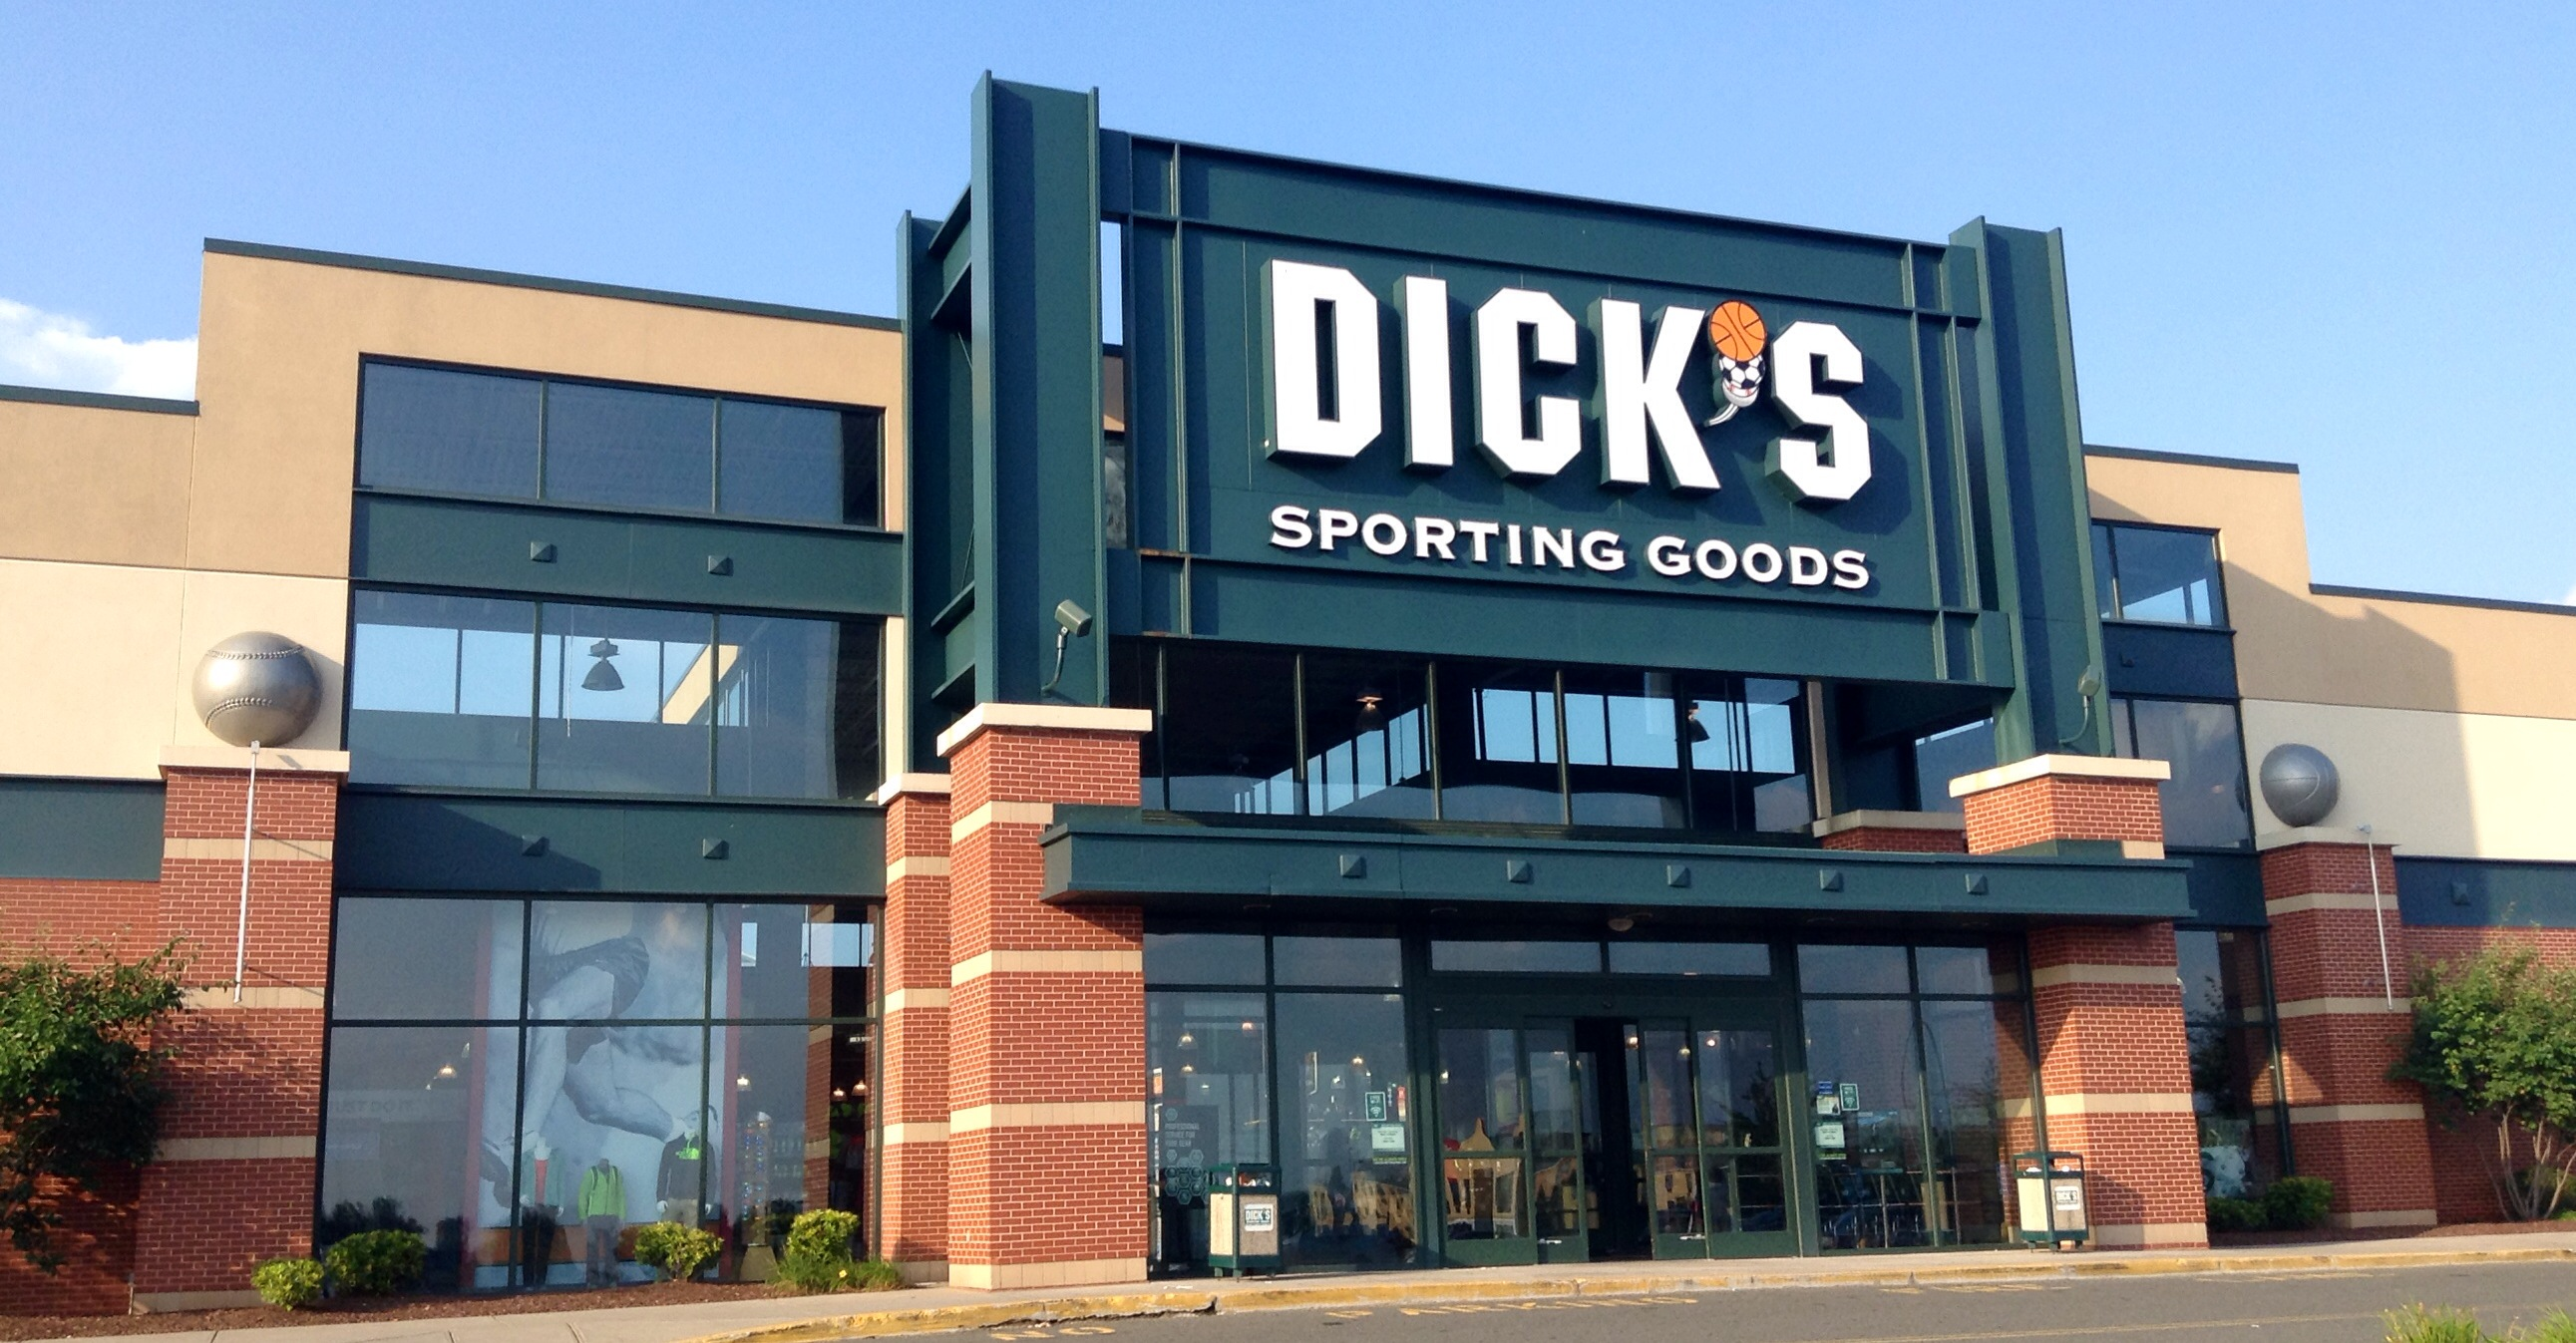 Catch the best deals with these 57 Dicks Sporting Goods coupons and sales for November 2018 with discounts up to 100 Off Coupon Sherpa is the MVP of savings!